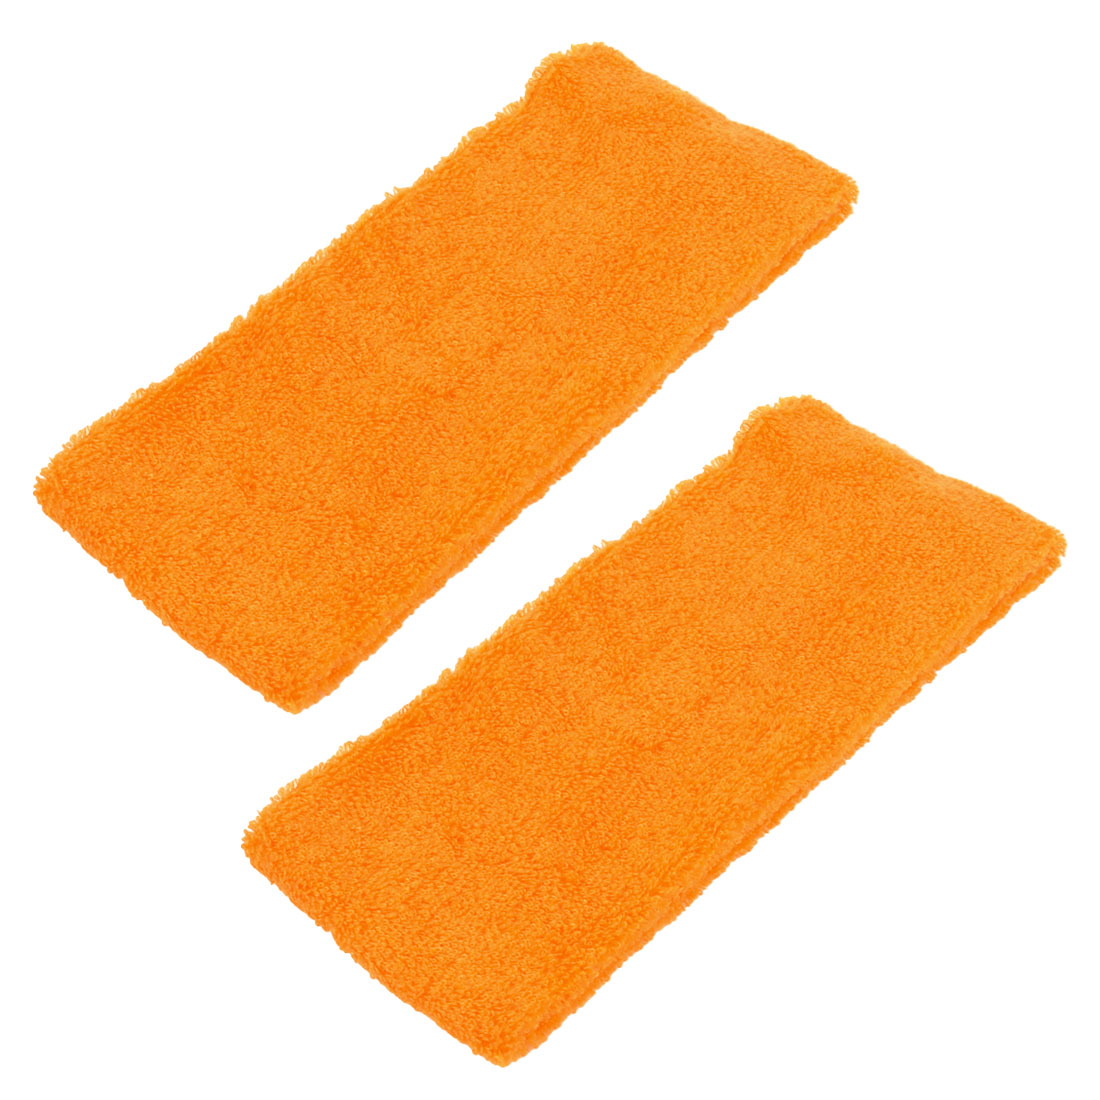 Athletic Sports Terry Elastic Sweat Absorbent Headband Orange 2 Pcs